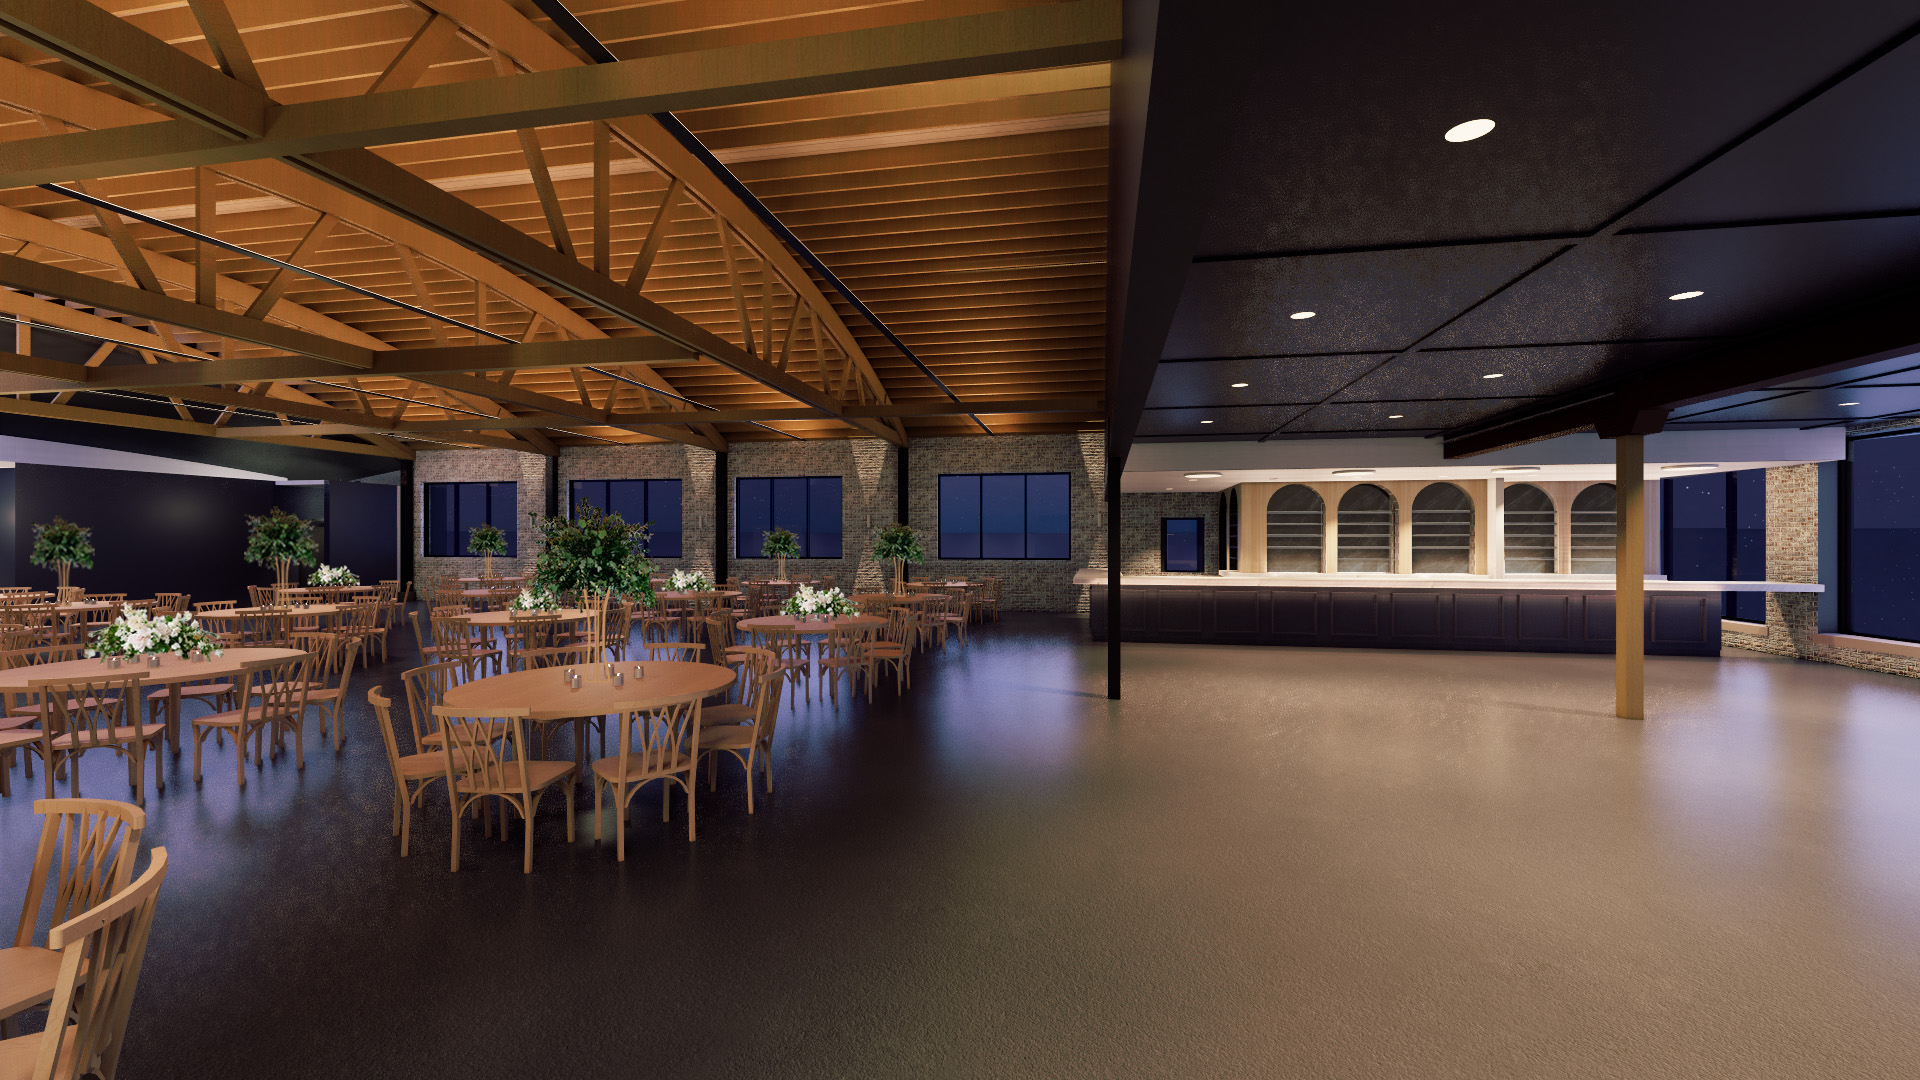 A rendering of a wedding venue with a bar on the right and tables and chairs on the right.